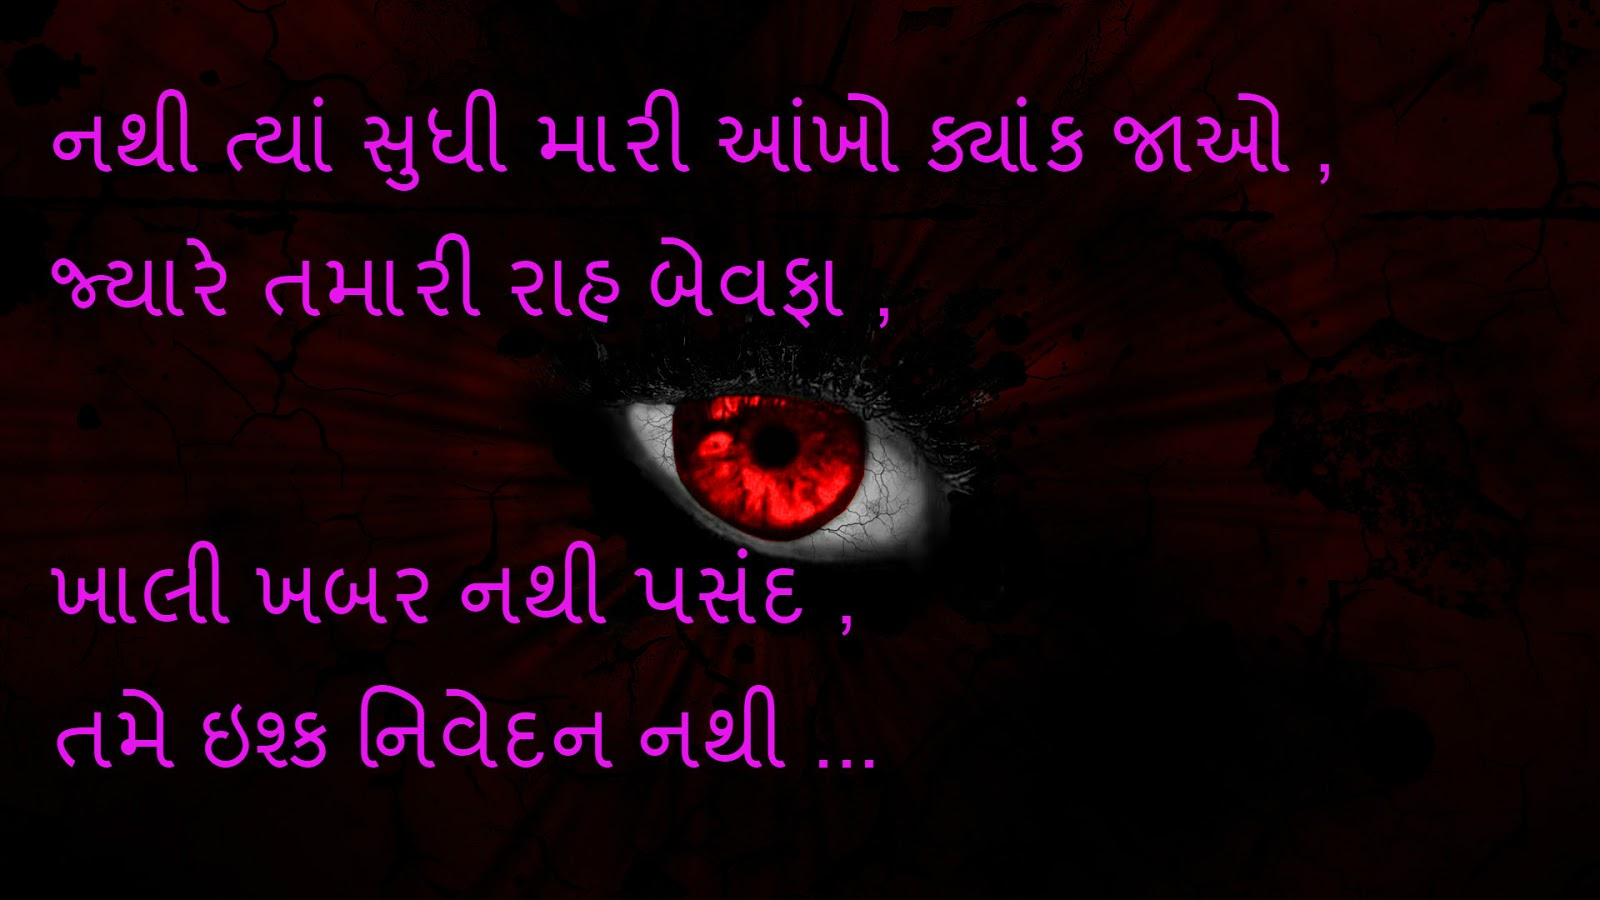 Shayari Hi Shayari-Images Download,Dard Ishq,Love,Zindagi ...